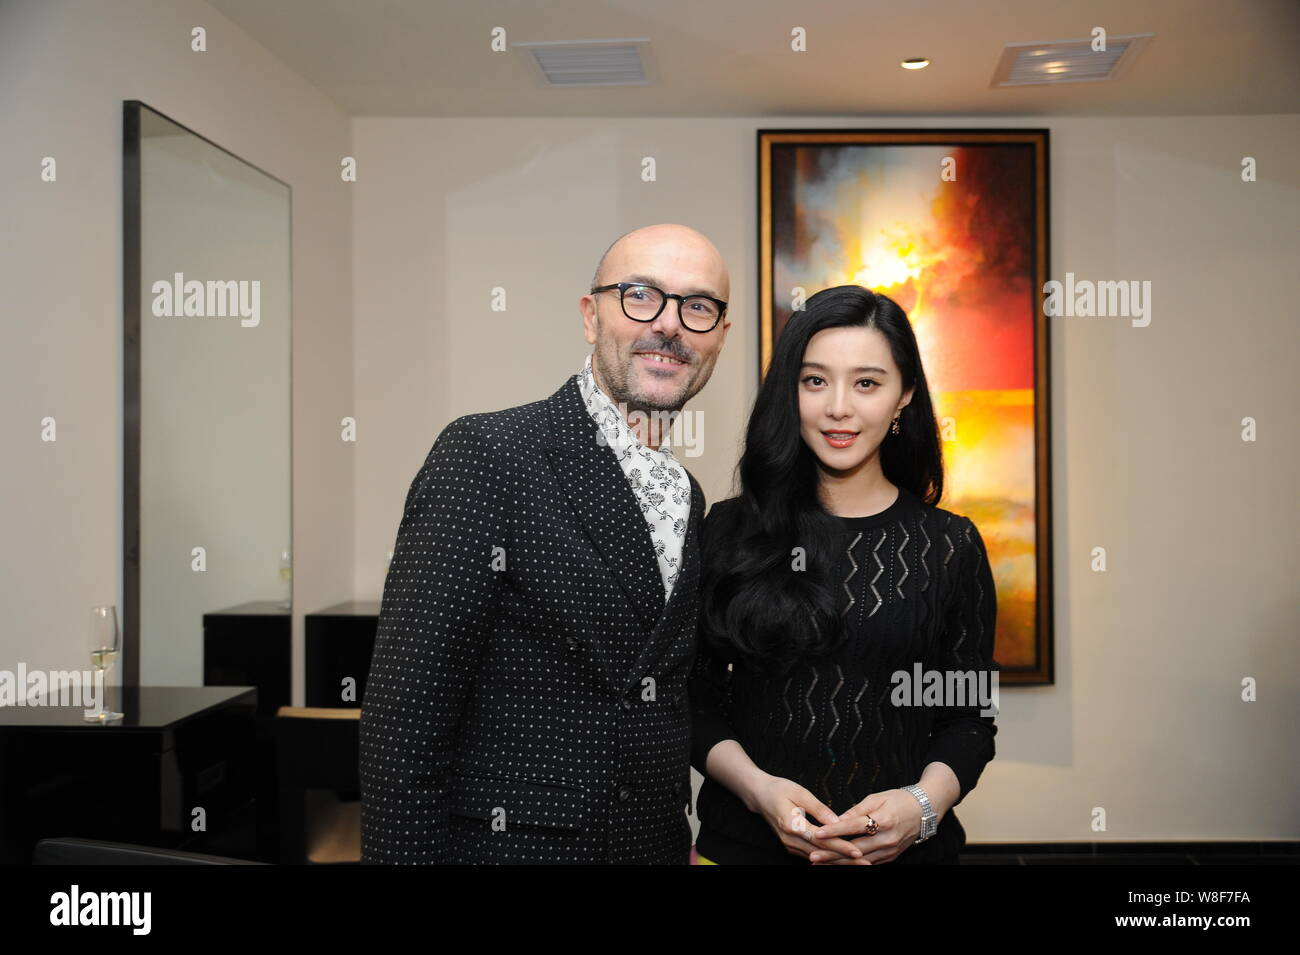 Chinese actress Fan Bingbing (right) poses with executive of Rossano Ferretti during the opening ceremony for a new store of Rossano Ferretti Hair Spa Stock Photo